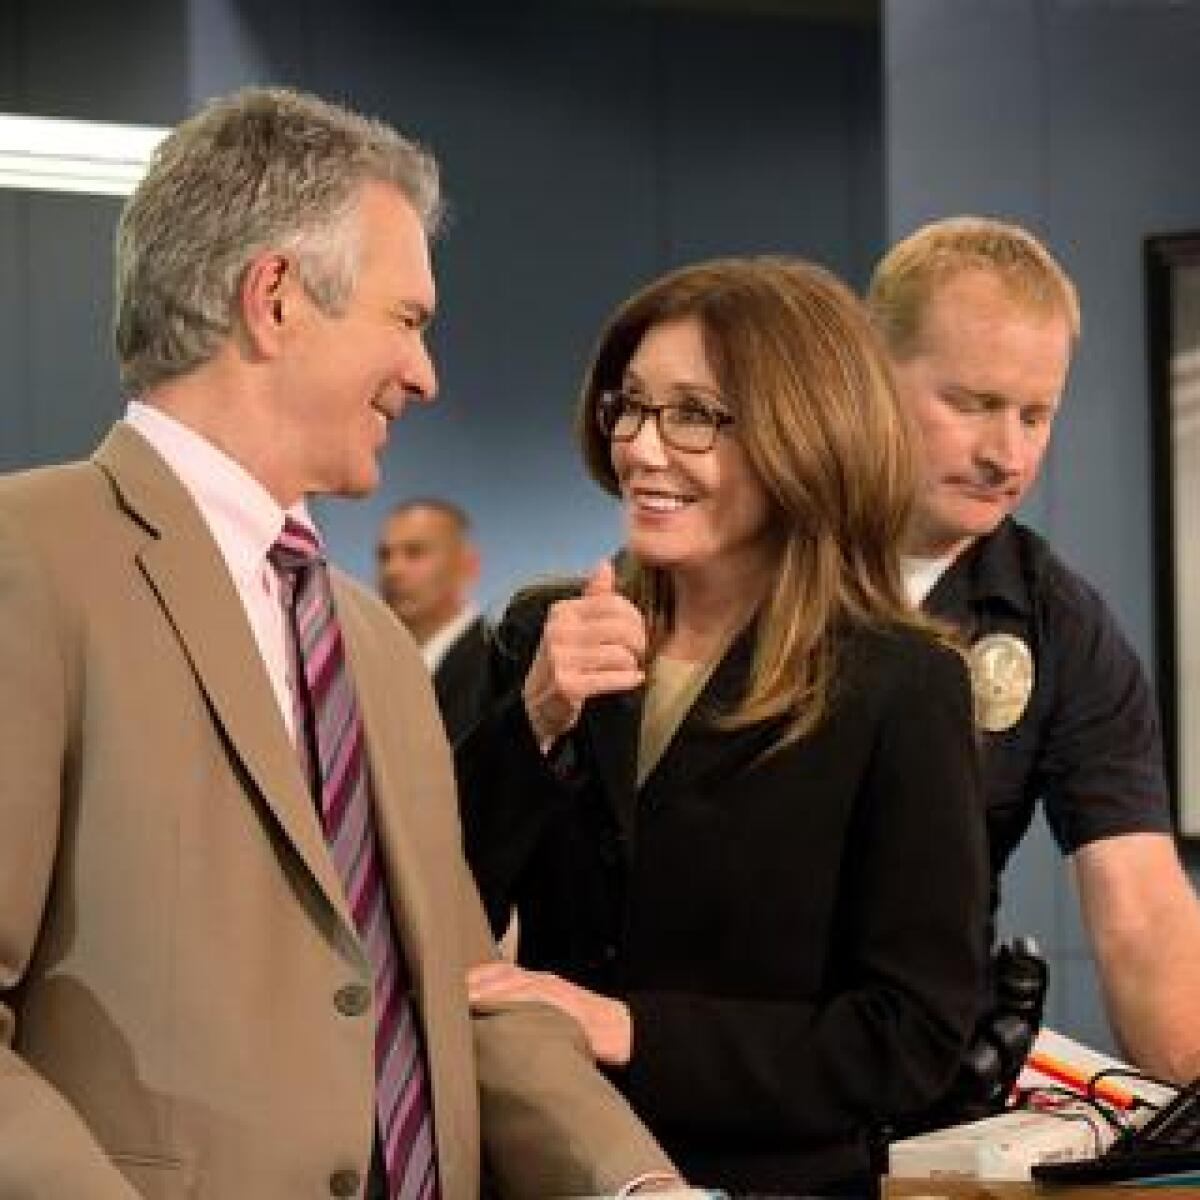 Mary McDonnell: 'Major Crimes' Has Kicks for 'Closer' Fans